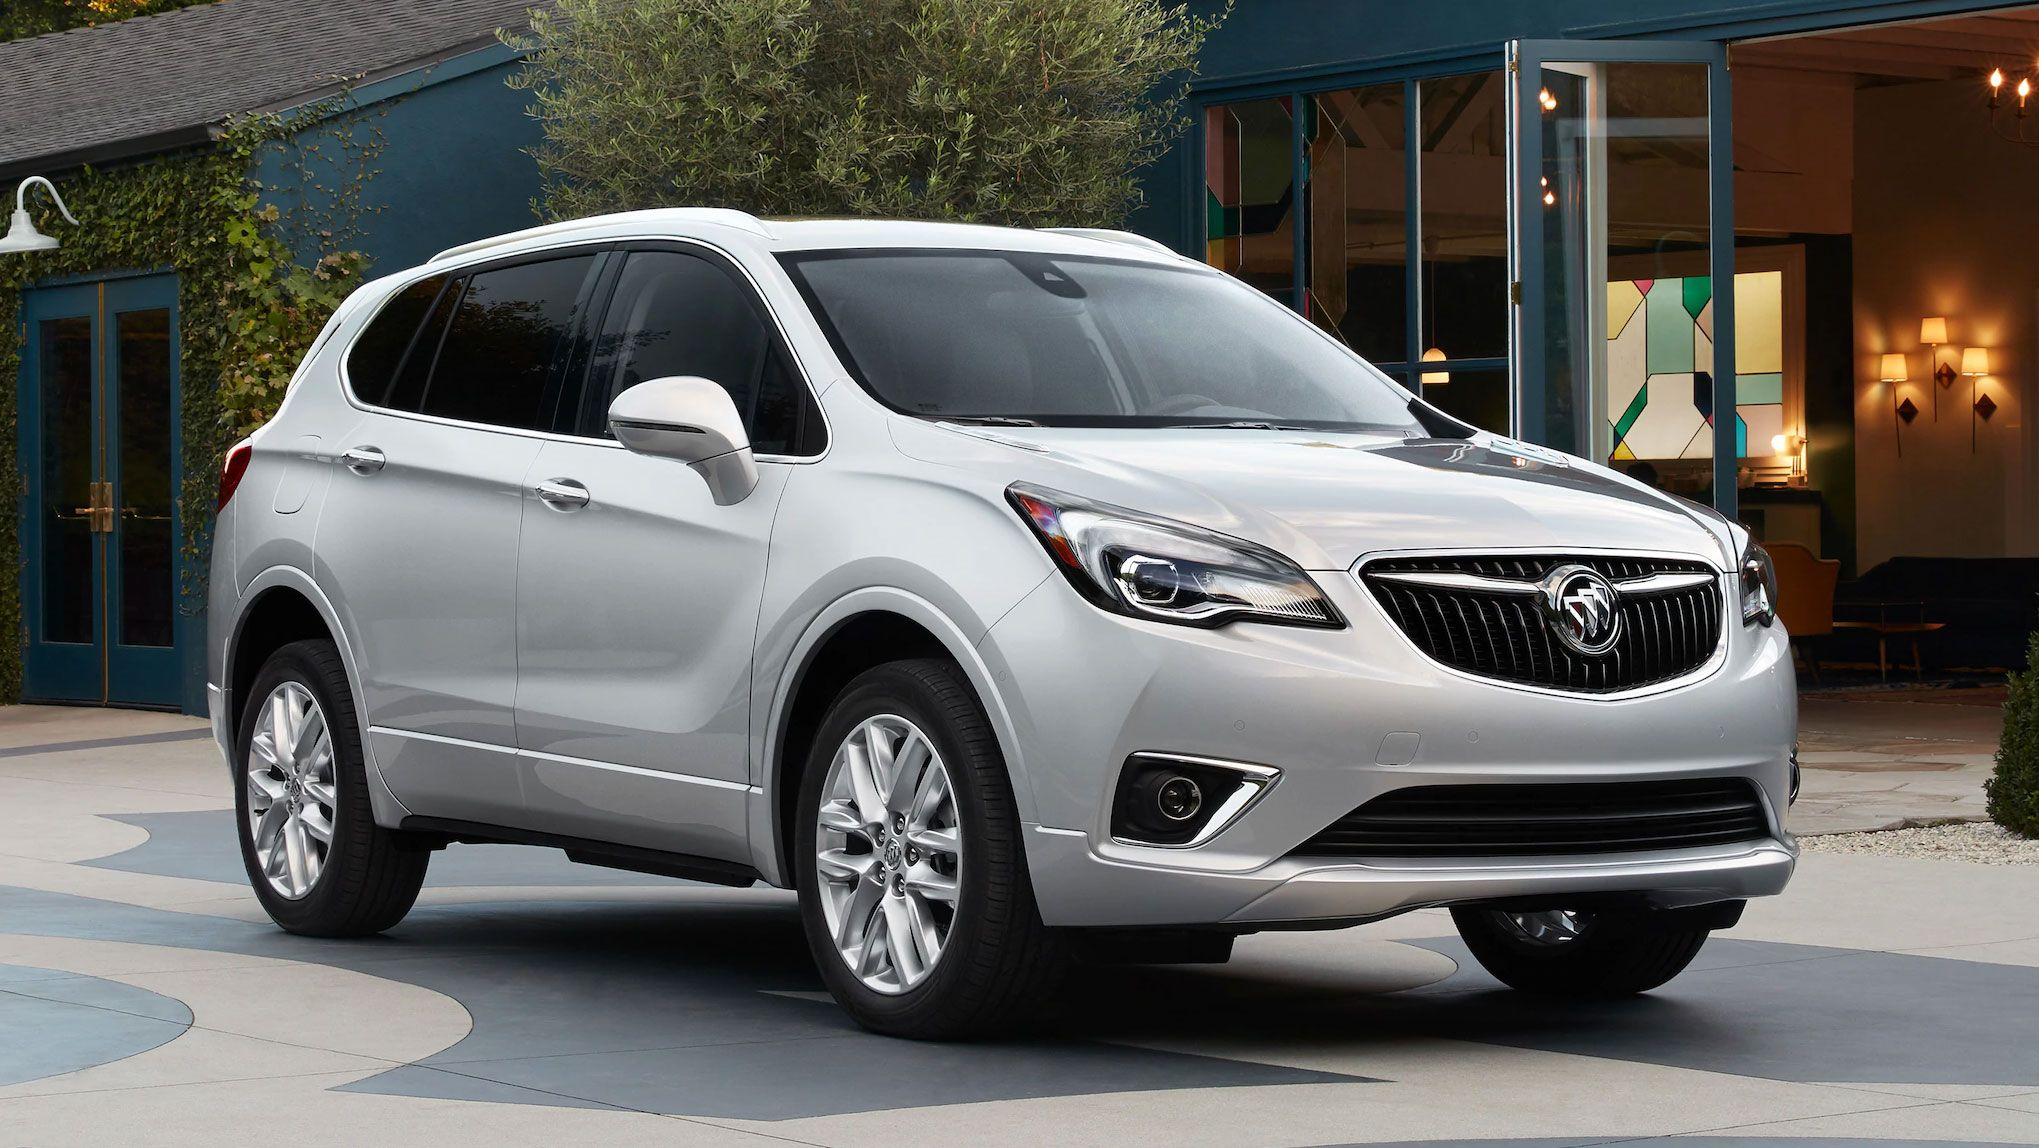 2020 Buick Envision Review, Pricing, And Specs 2021 Buick Envision Mpg, Models, Manual